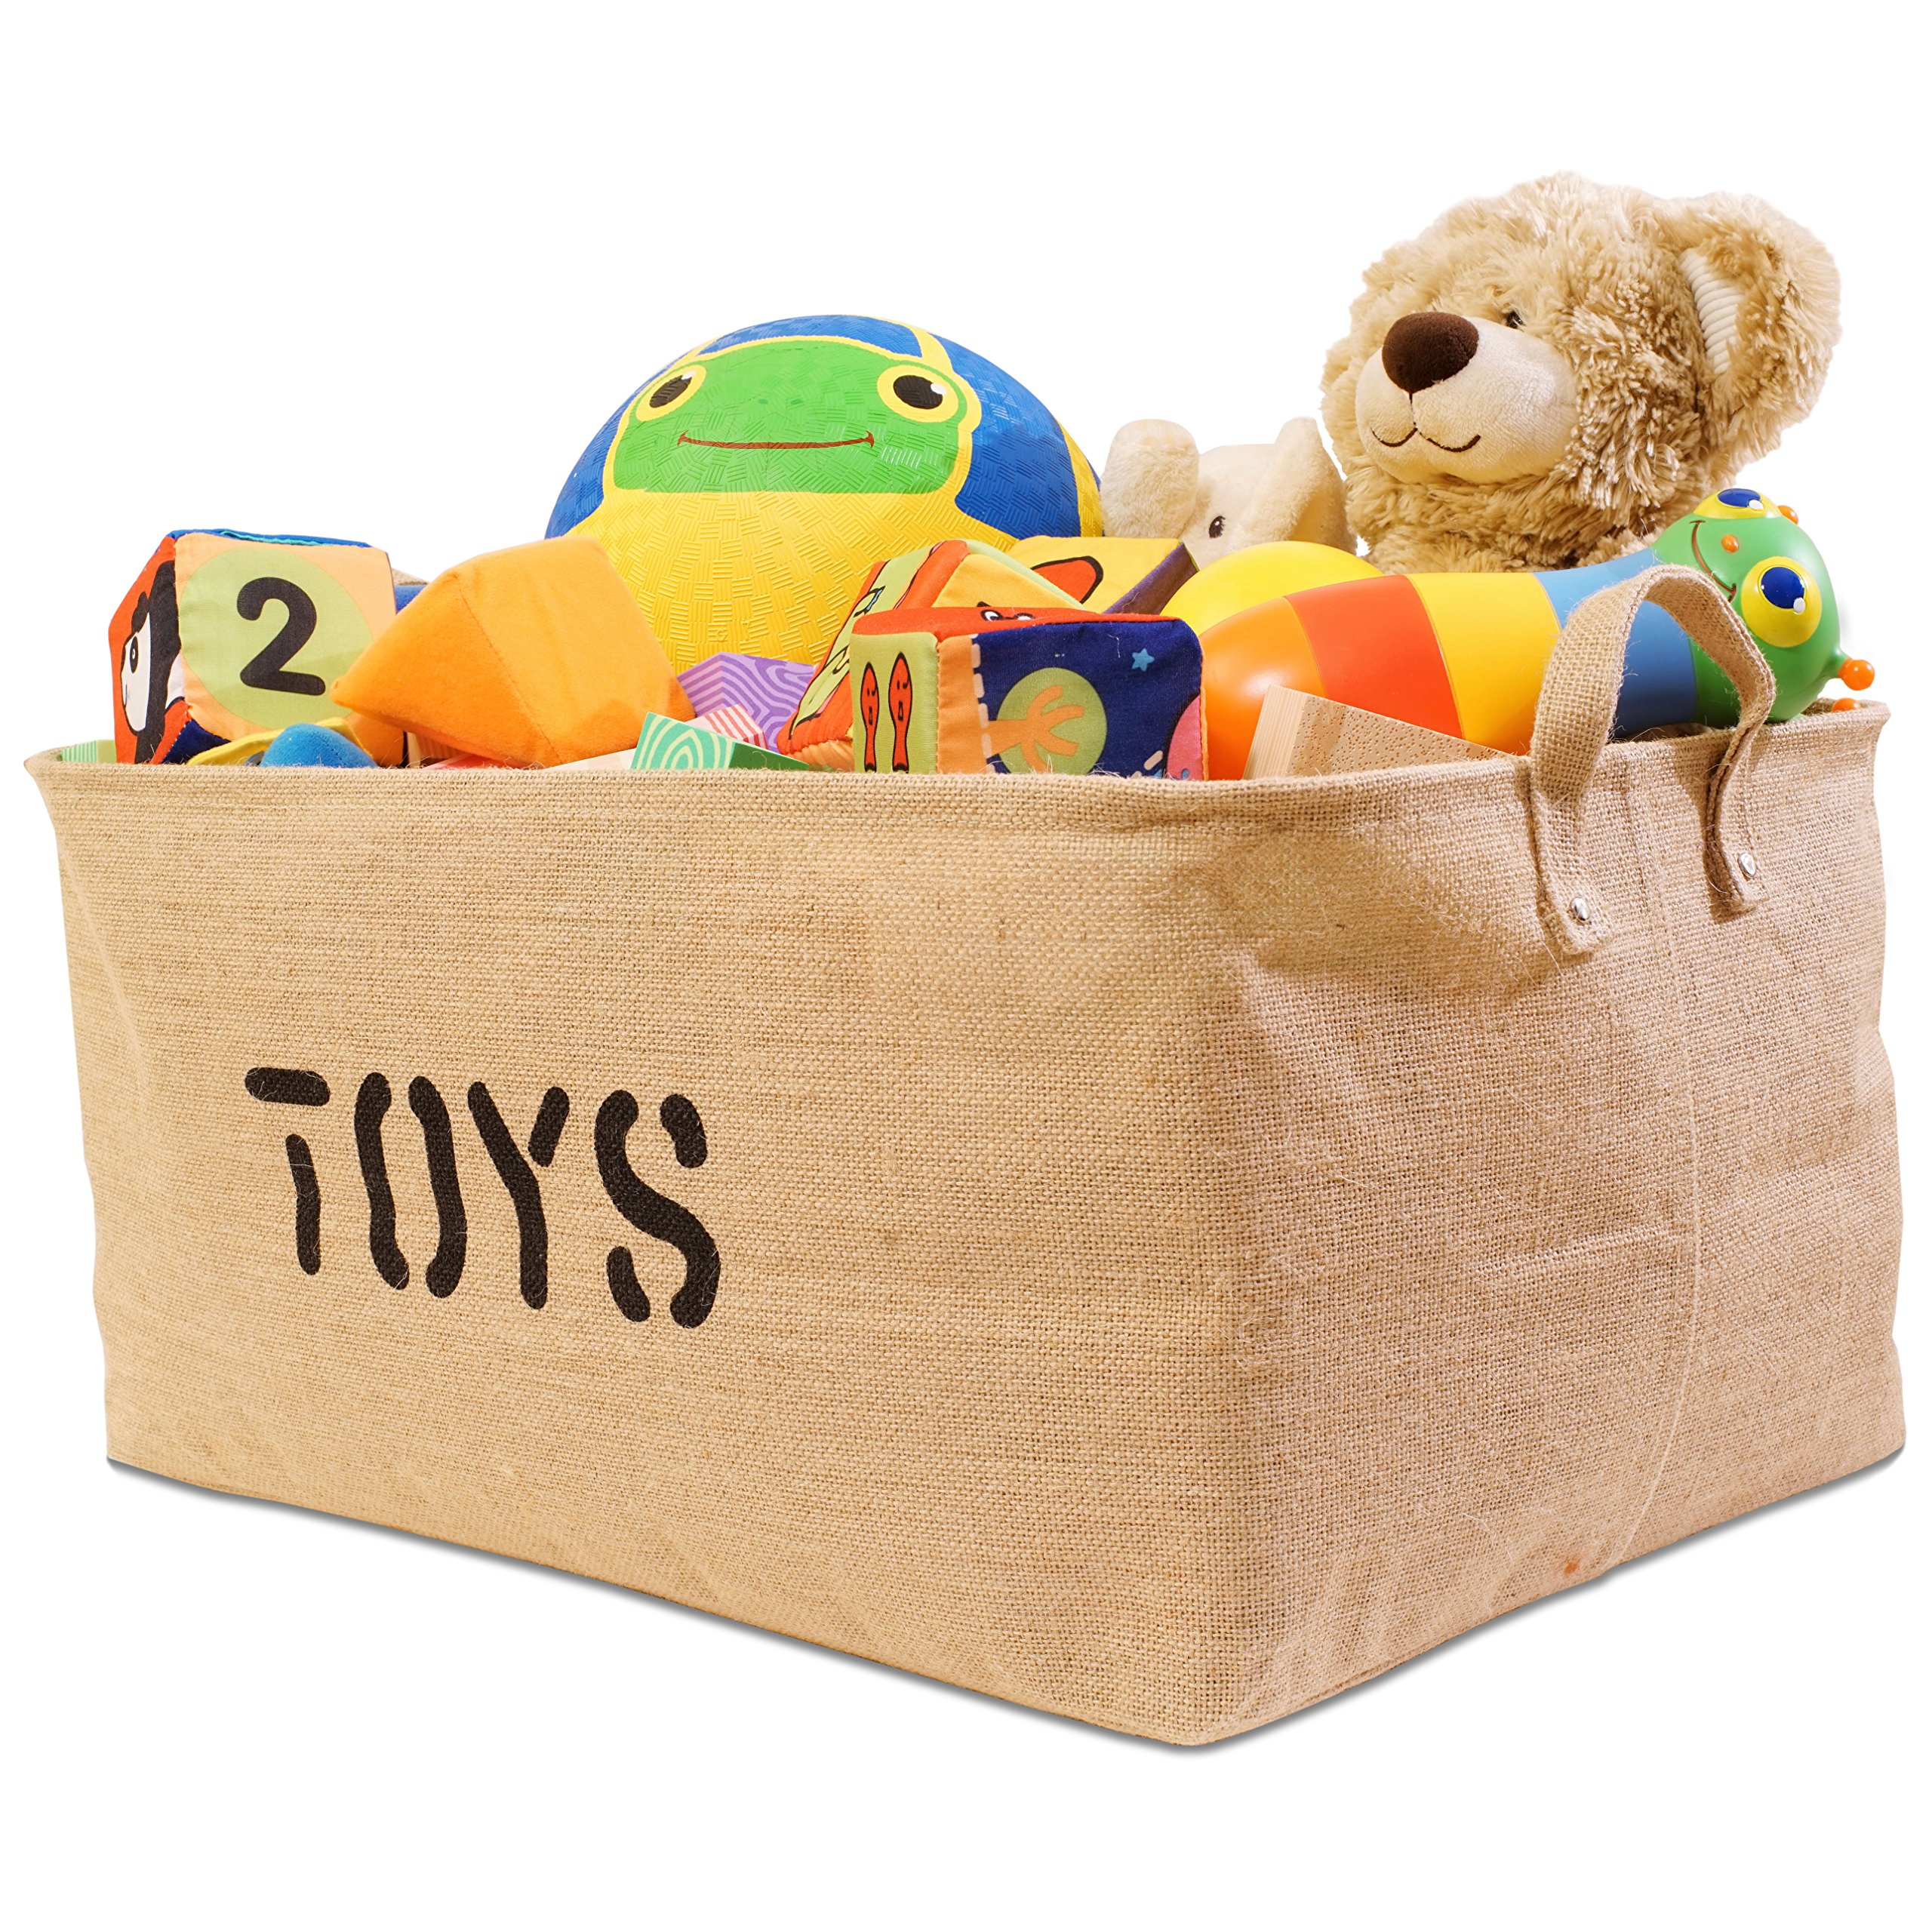 Jute Toys Storage Bins 22 Inches Long By 15 Inches Wide 3 SIZES Storage Bin,